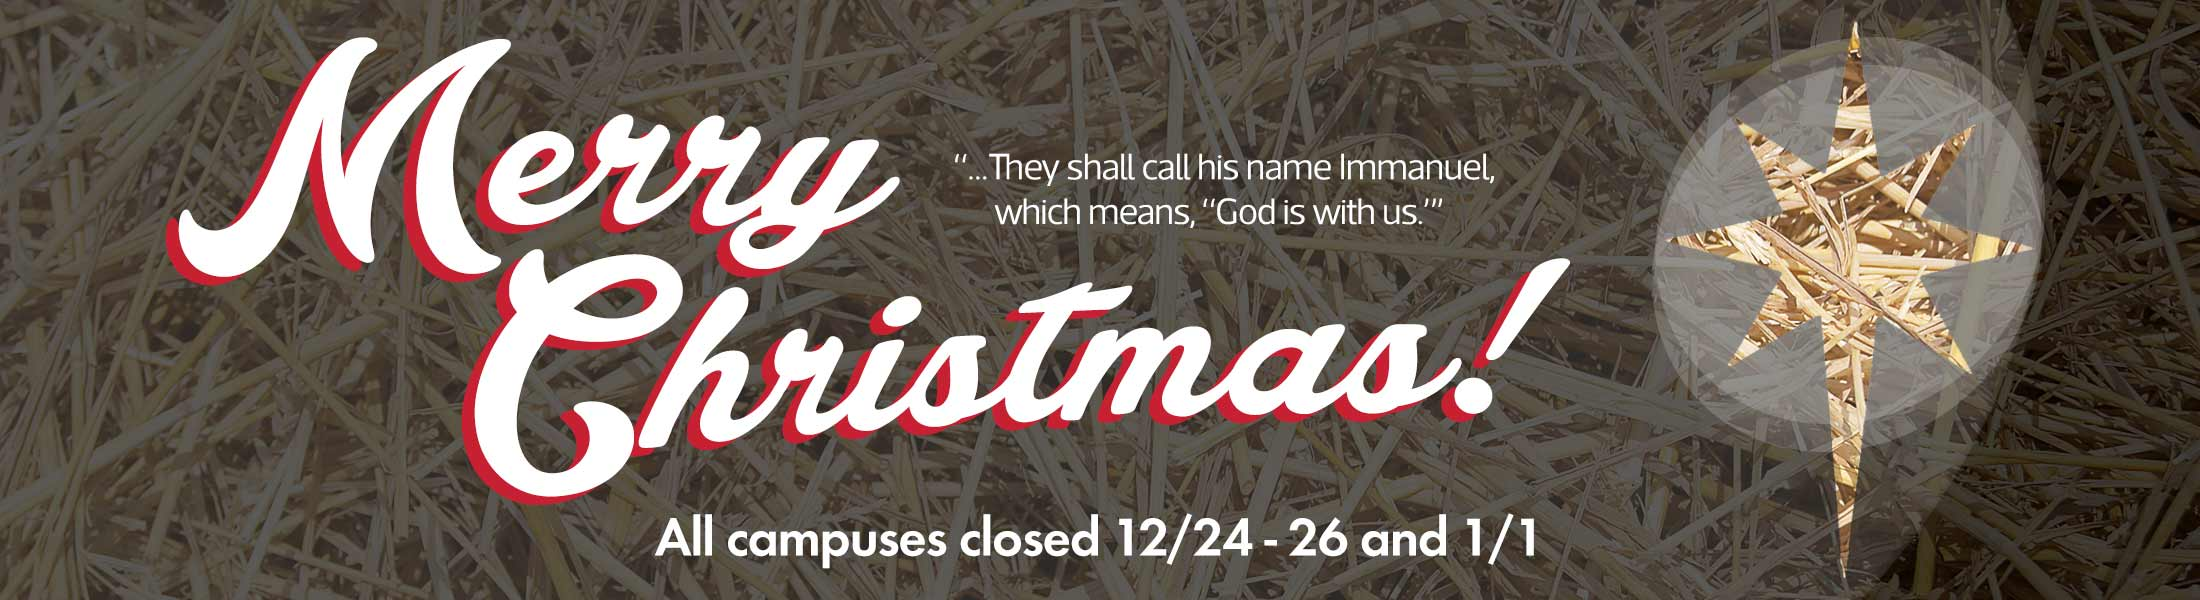 Merry Christmas from Western Seminary